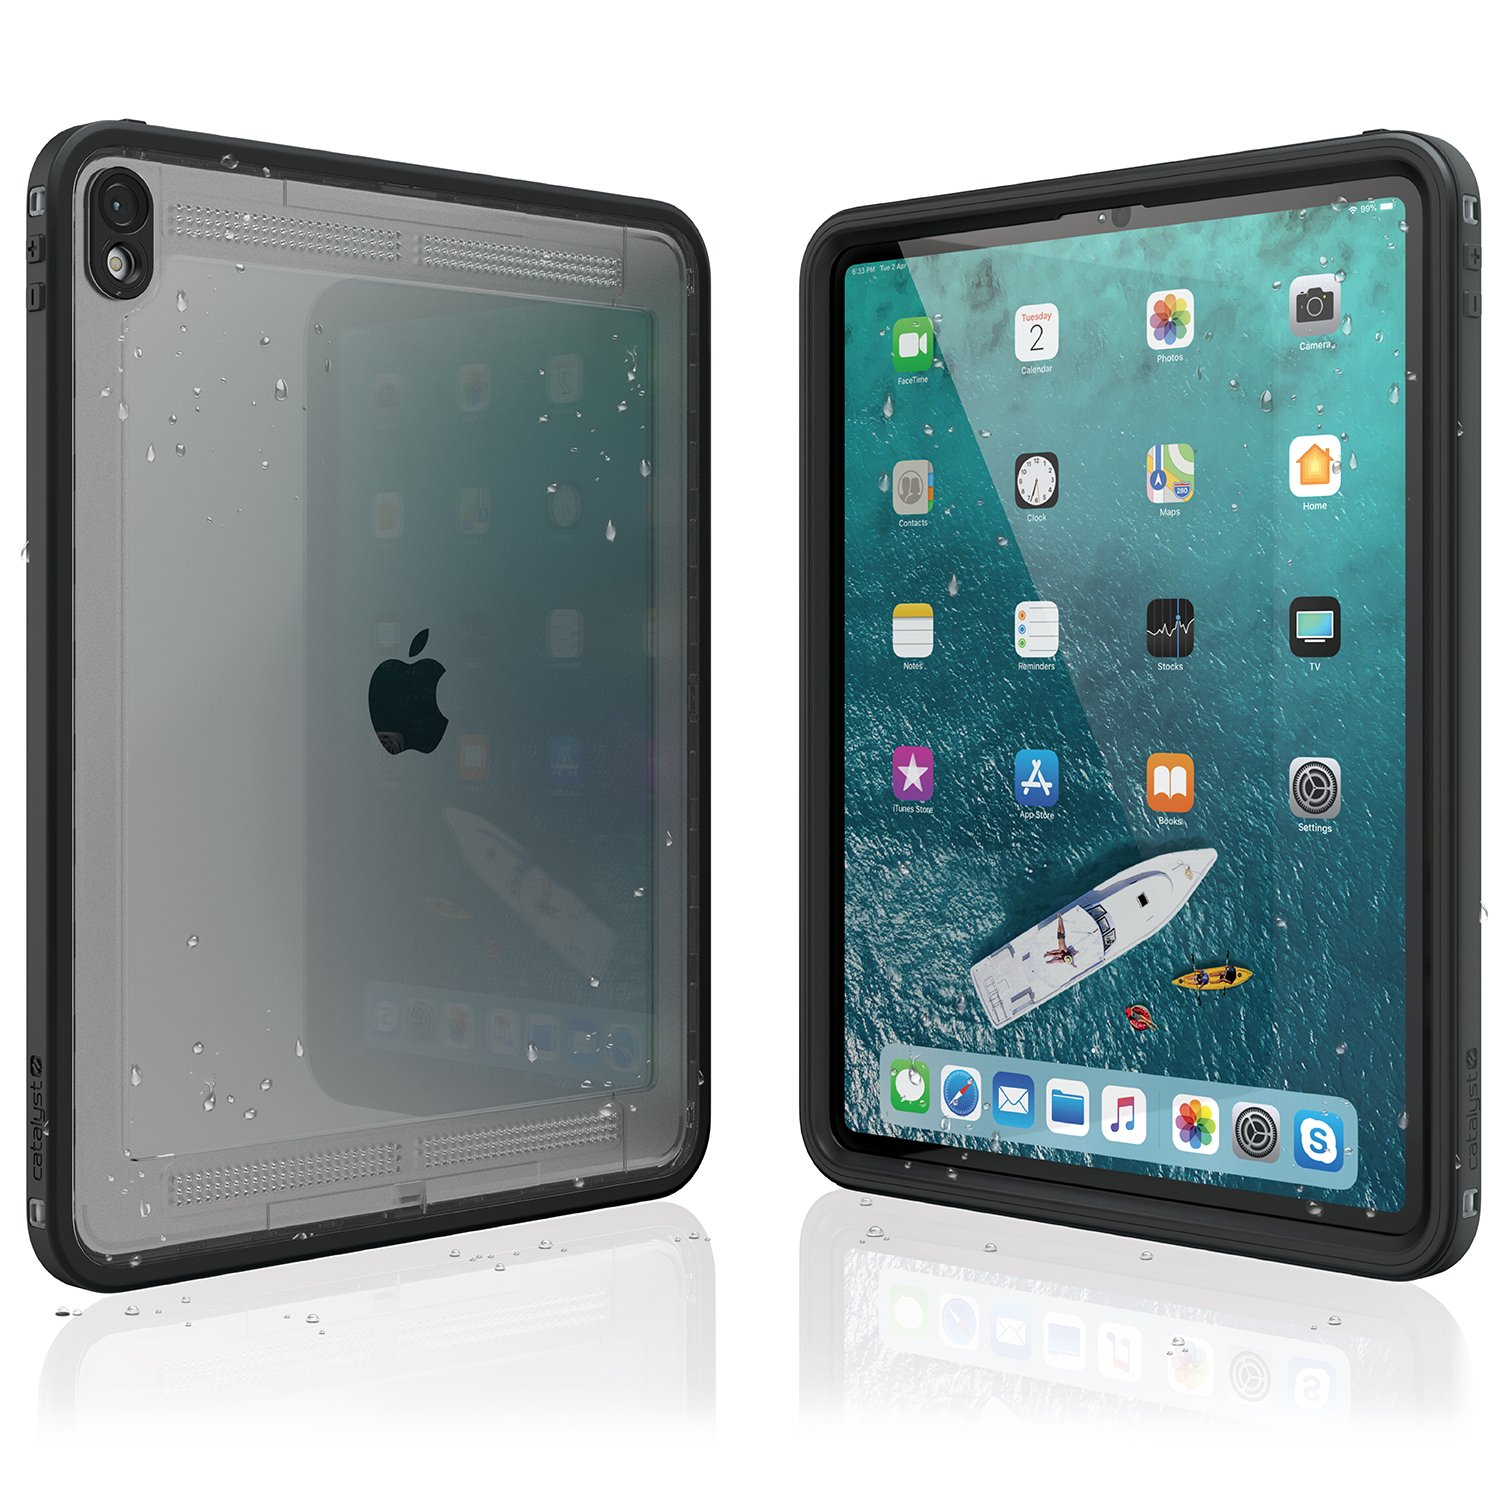 Waterproof Case, da Catalyst, para iPad Pro